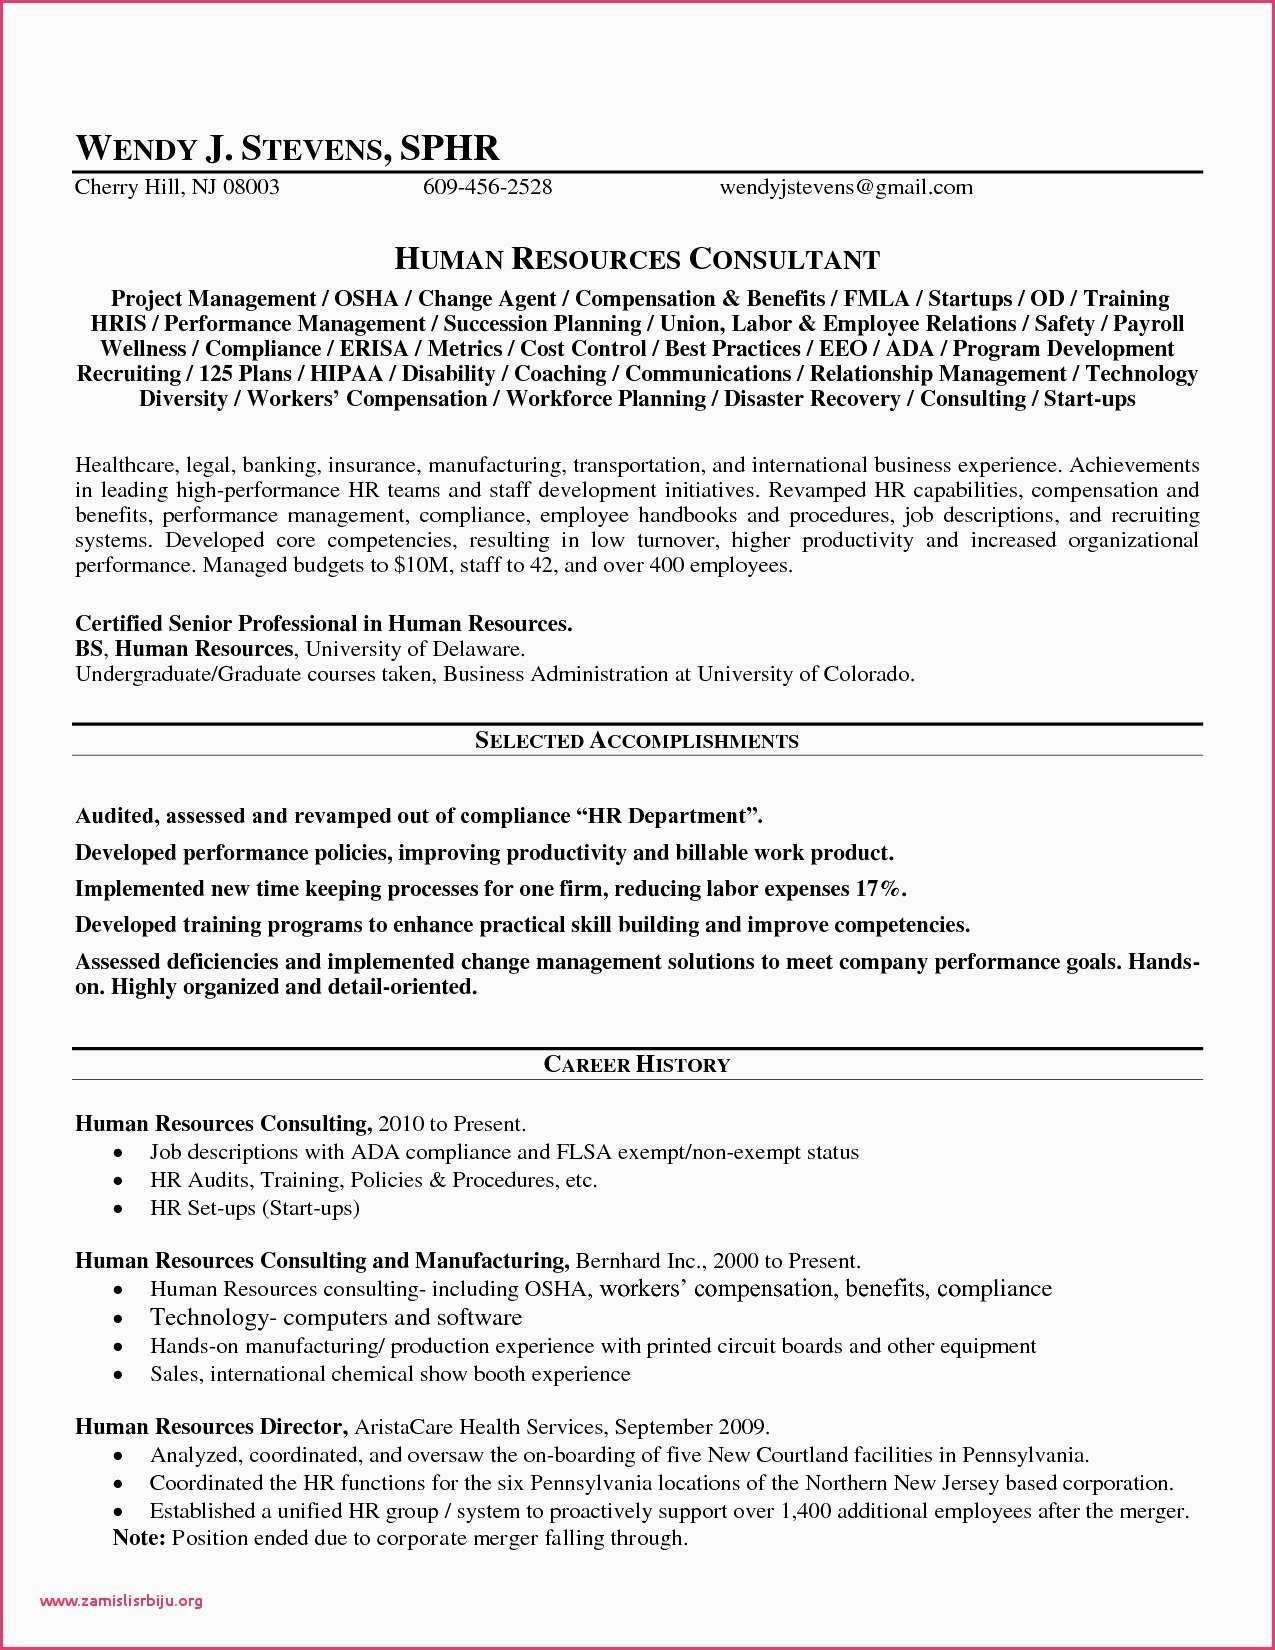 24 Up Busines Card Template Sample Cover Letter For Graduate Development Program New Resume Skill Human Resource Hr Manager Personal Statement